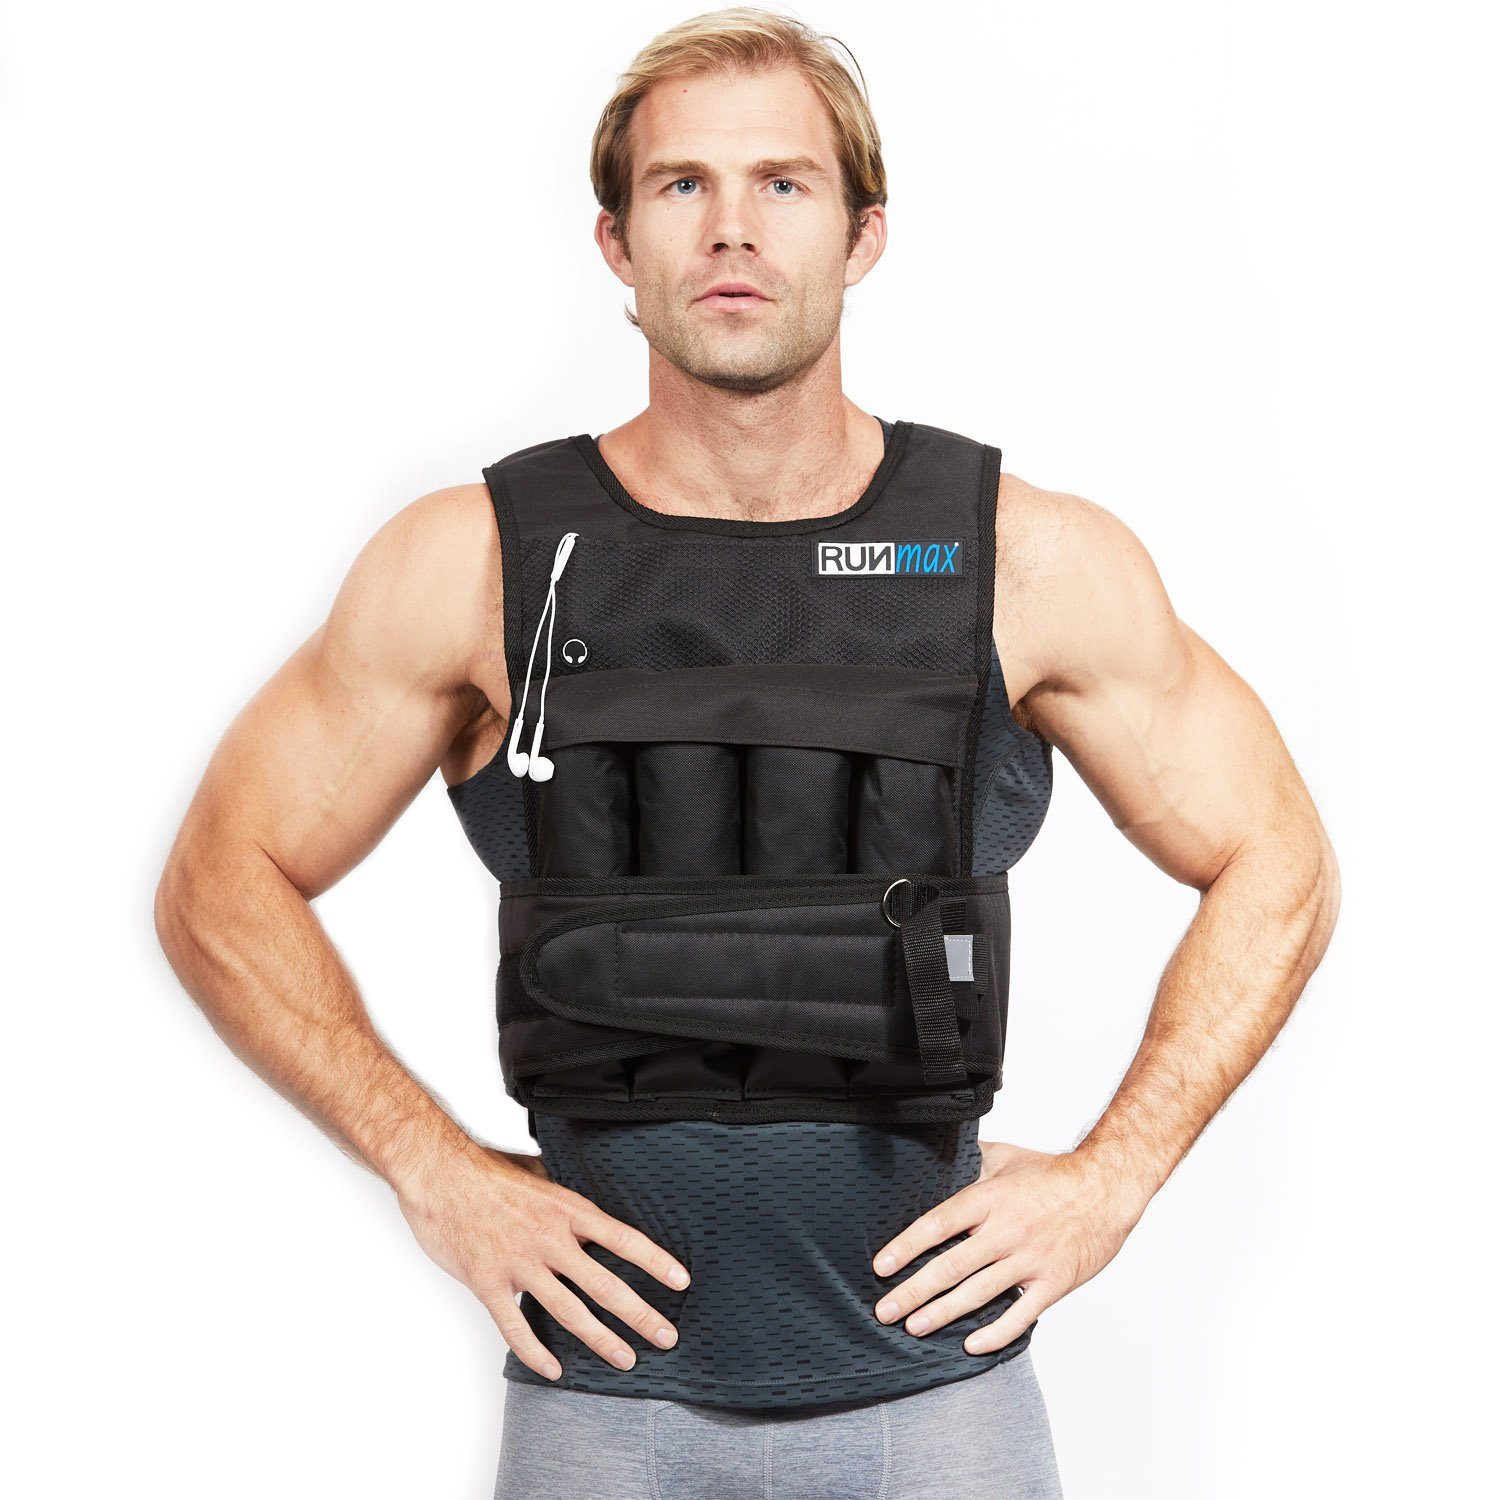 RUNmax RUNFast RM_20 Pro Weighted Vest, 20 lb. by RUNmax (Image #2)